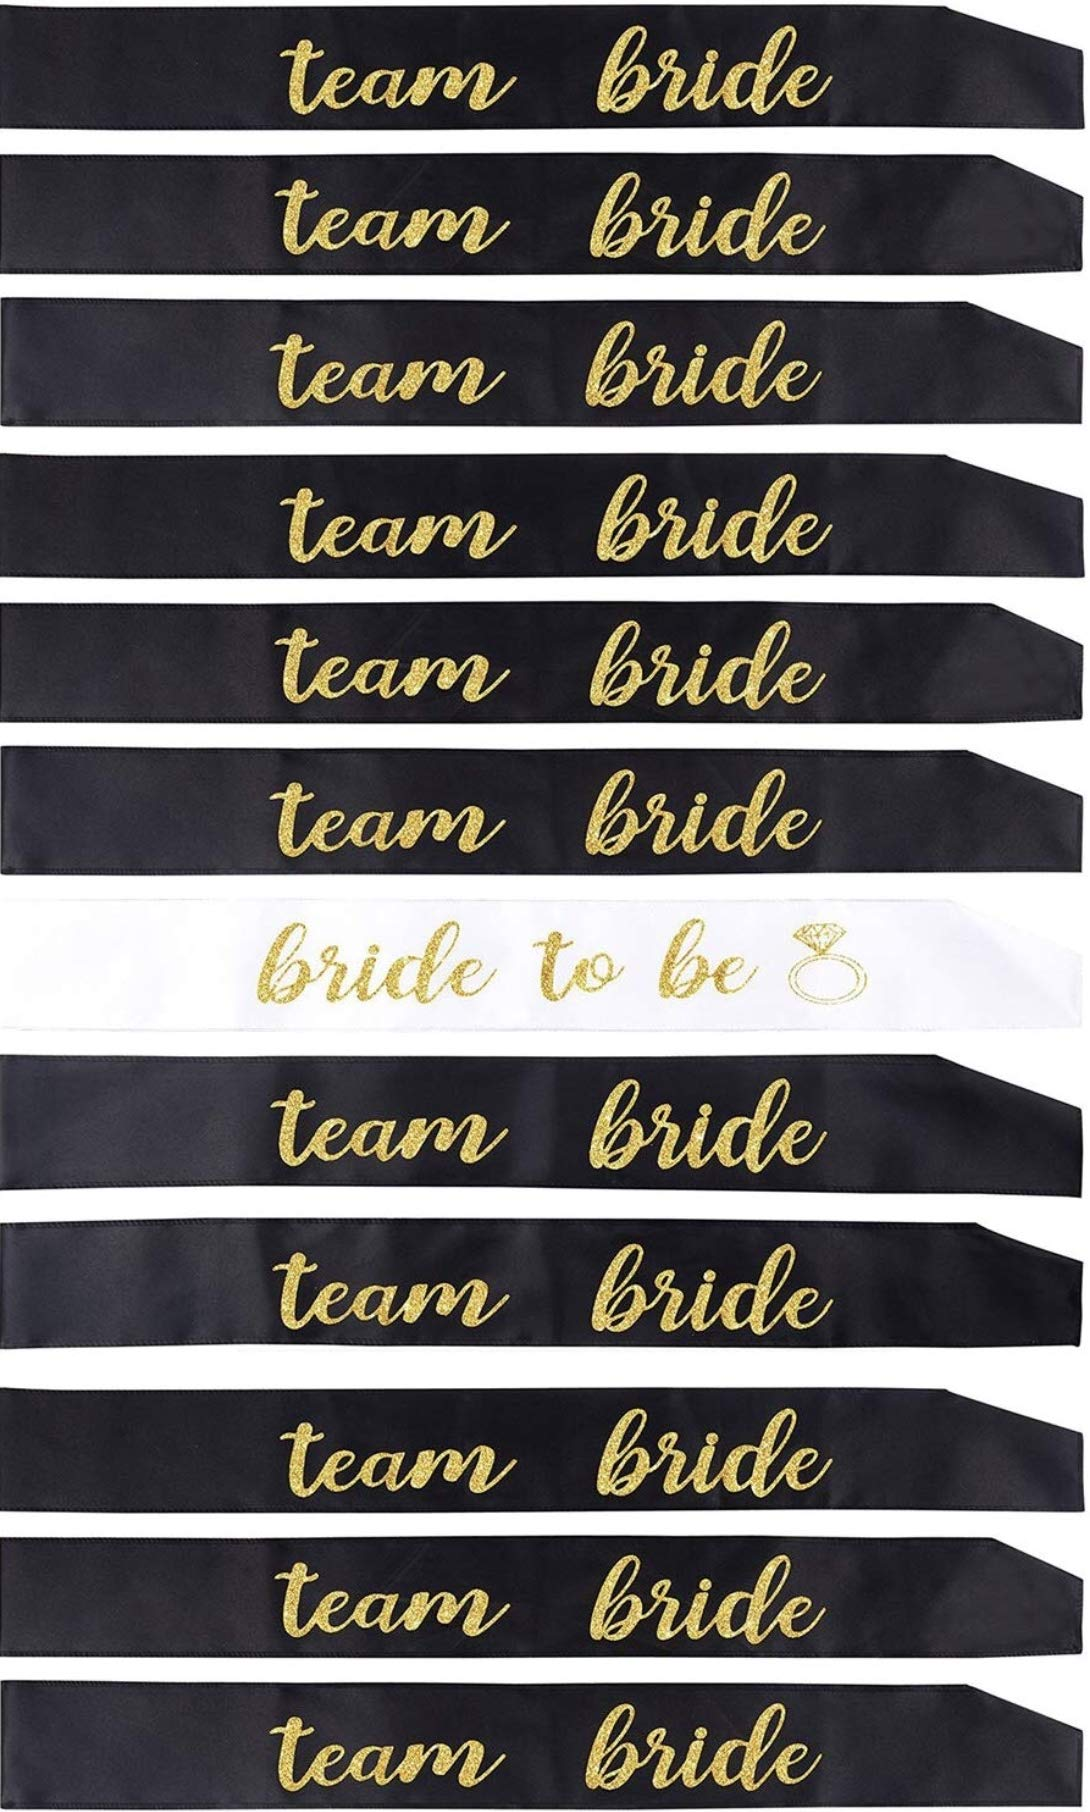 12 Pack Bachelorette Party sash Set/Bride to be sash/Bridesmaid sash, Team Bride or Bride Tribe sash as Bridal Shower Decorations, Bachelorette Party Favors or Supplies, Maid of Honor Gifts. by Gemich (Image #1)